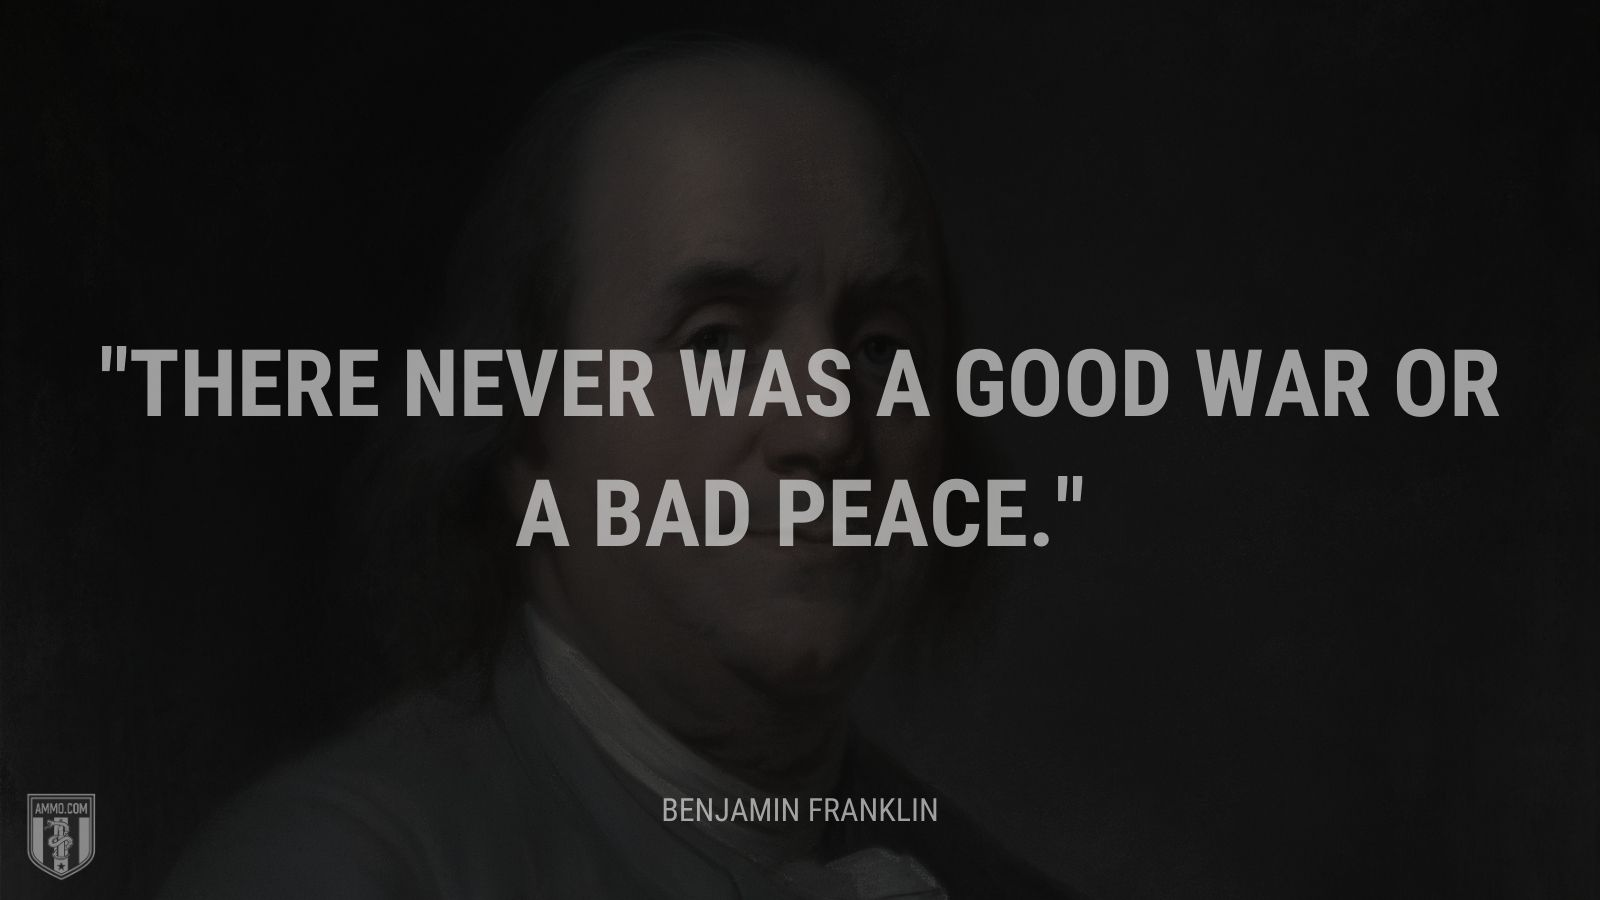 """There never was a good war or a bad peace."" - Benjamin Franklin"